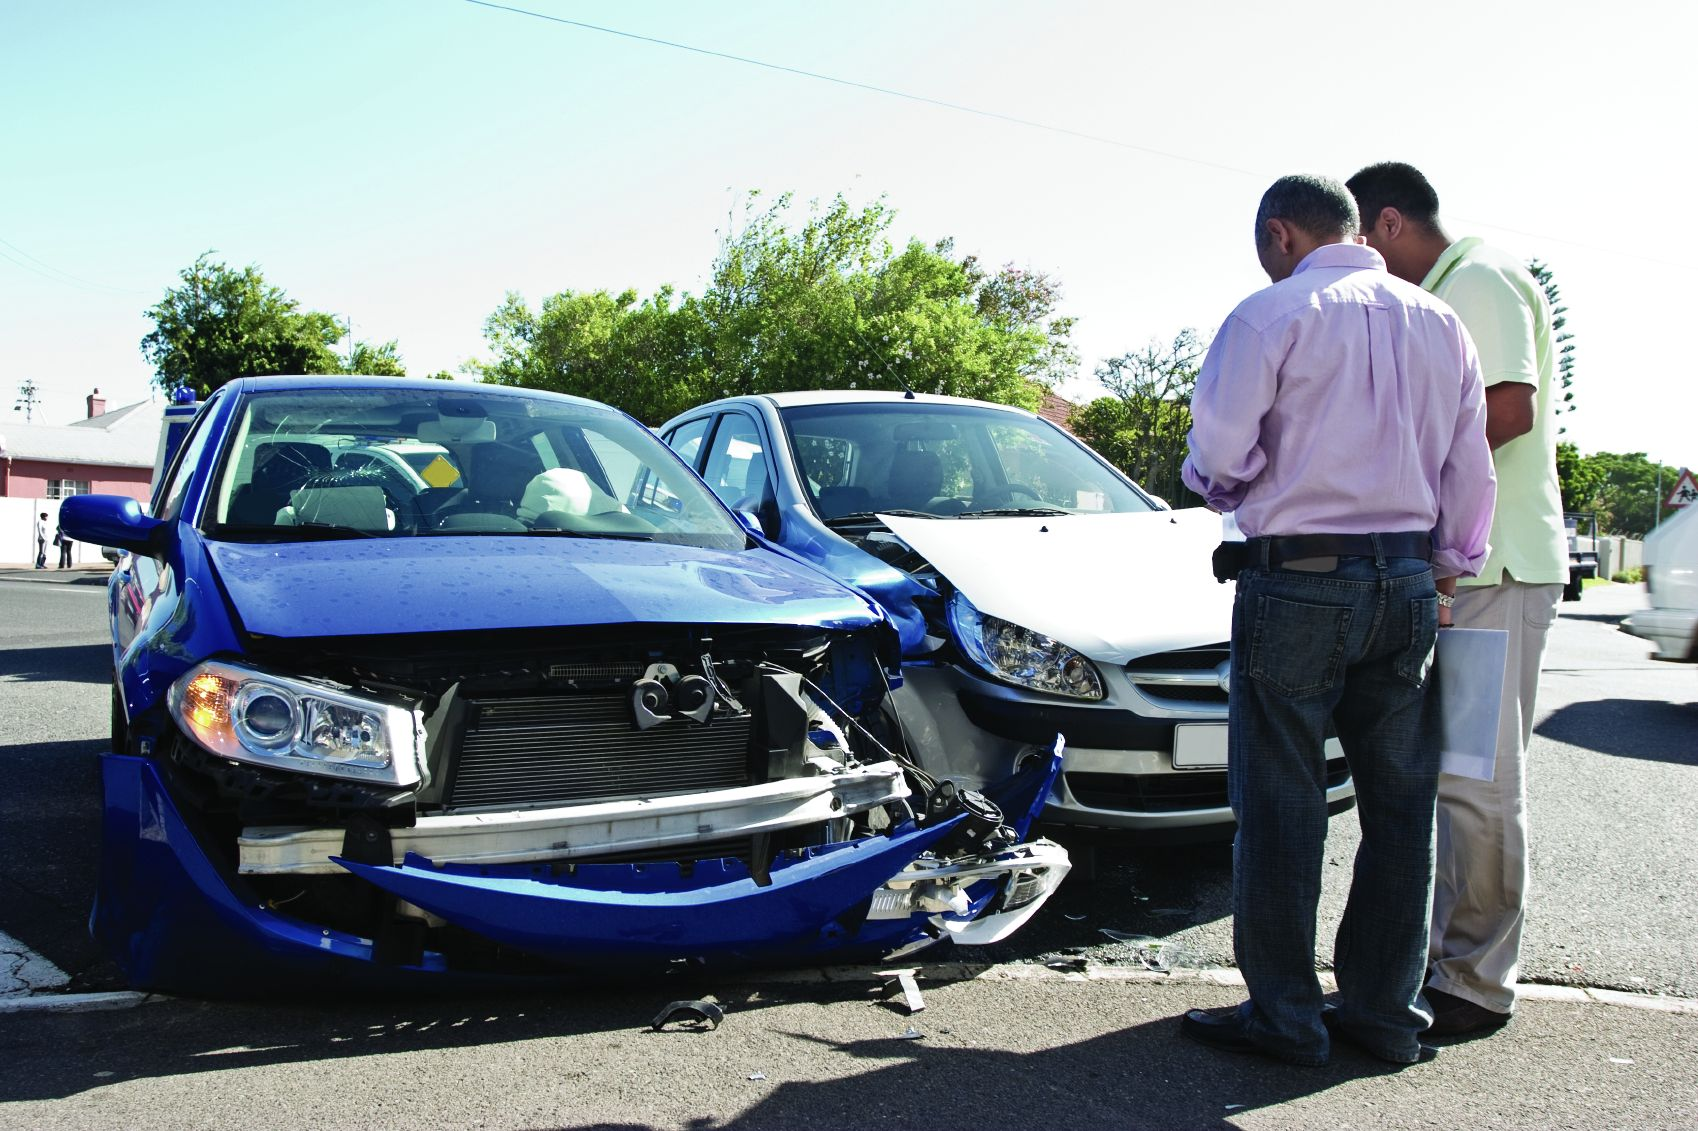 8 Key Elements of Driver Safety